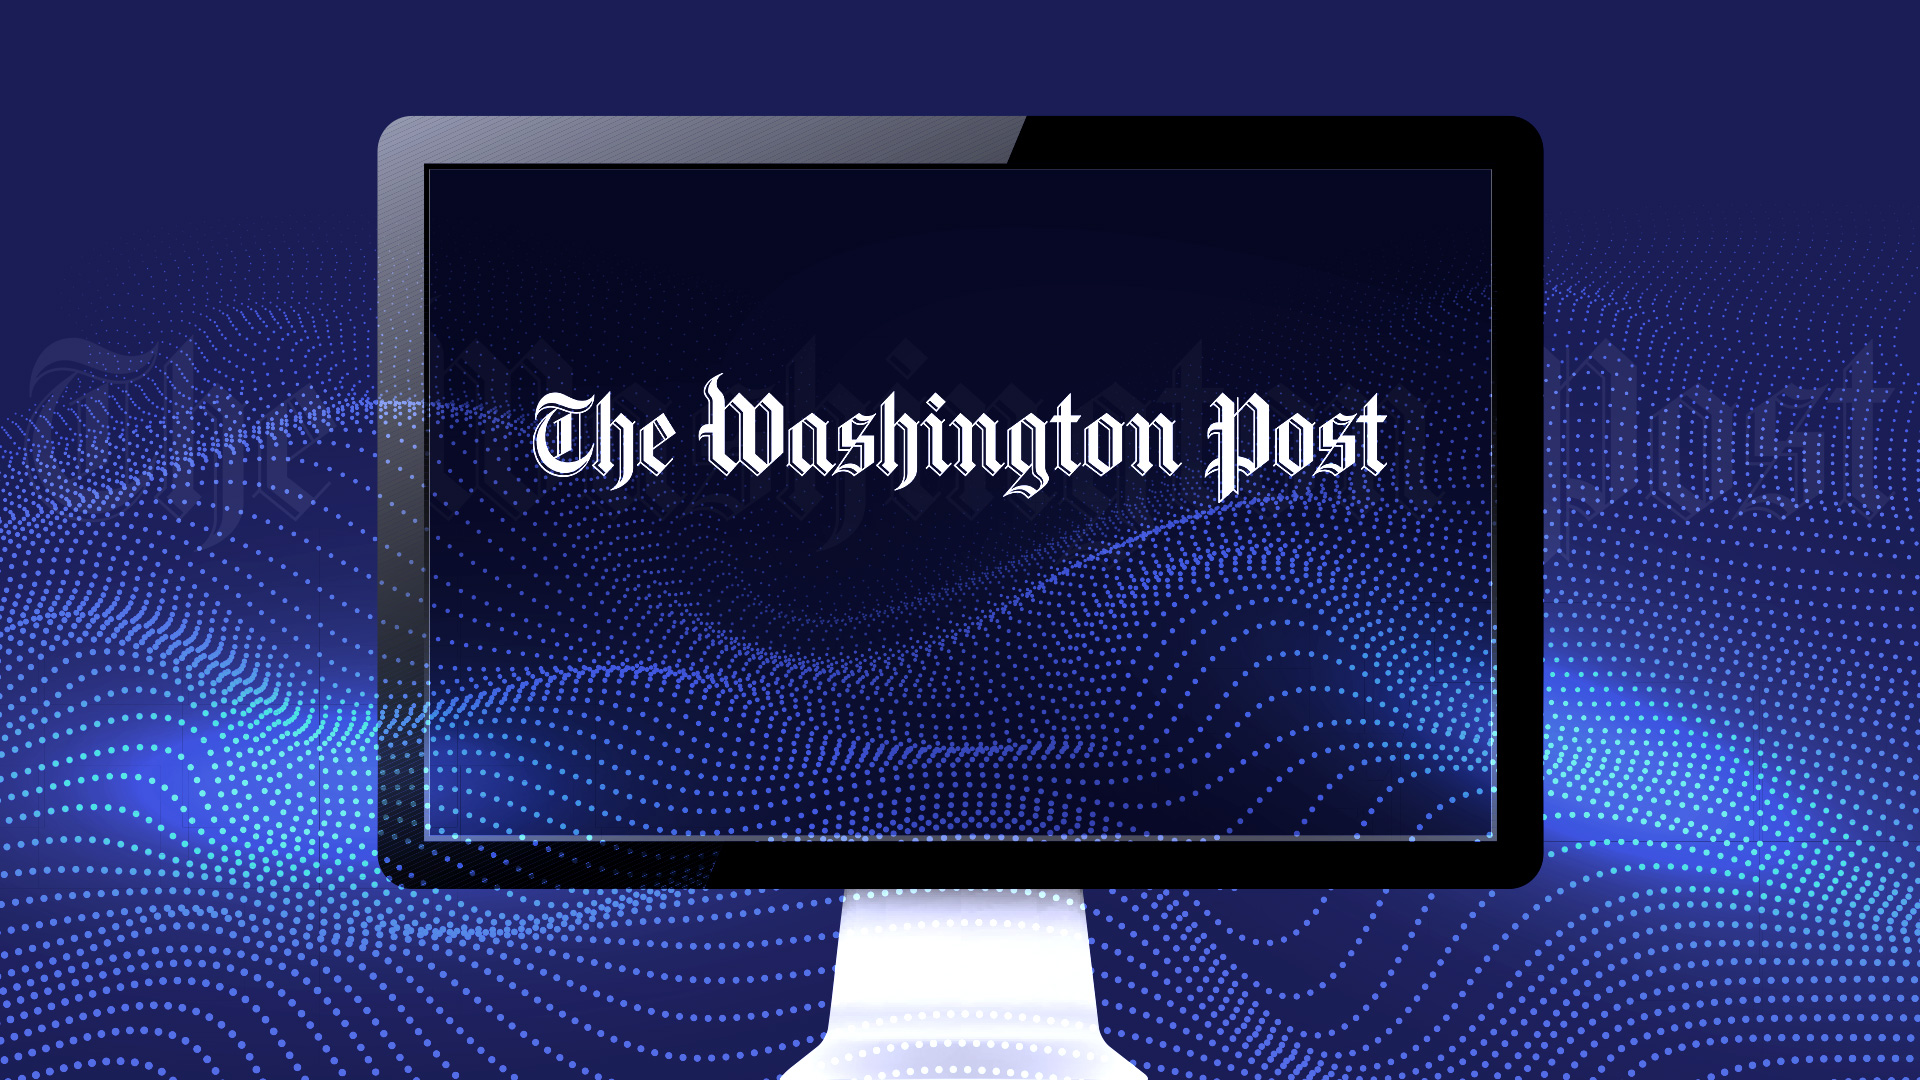 Washington Post Live produced 350 videos in 2020, which averaged 175,000 views each,